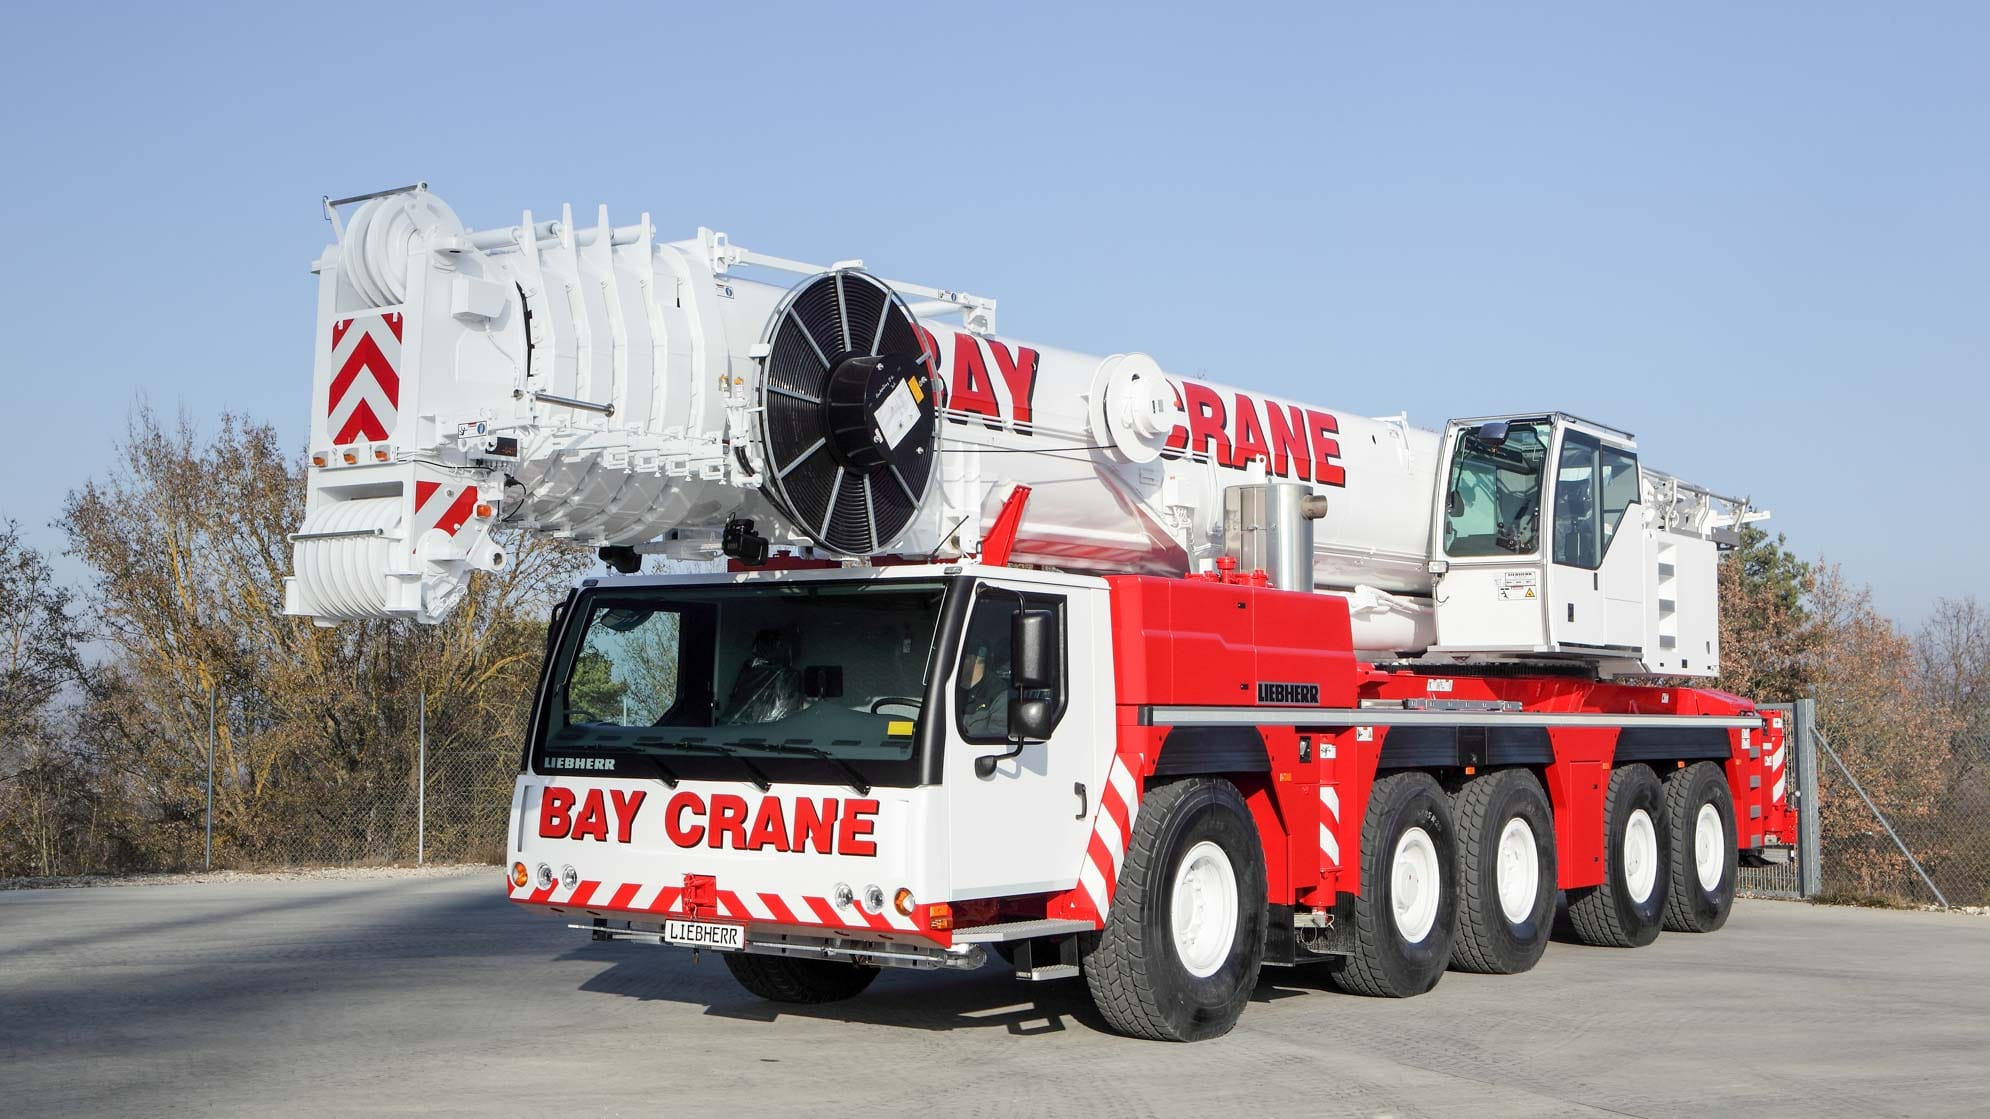 LTM 1200/1 all terrain crane with a hydraulic expandable